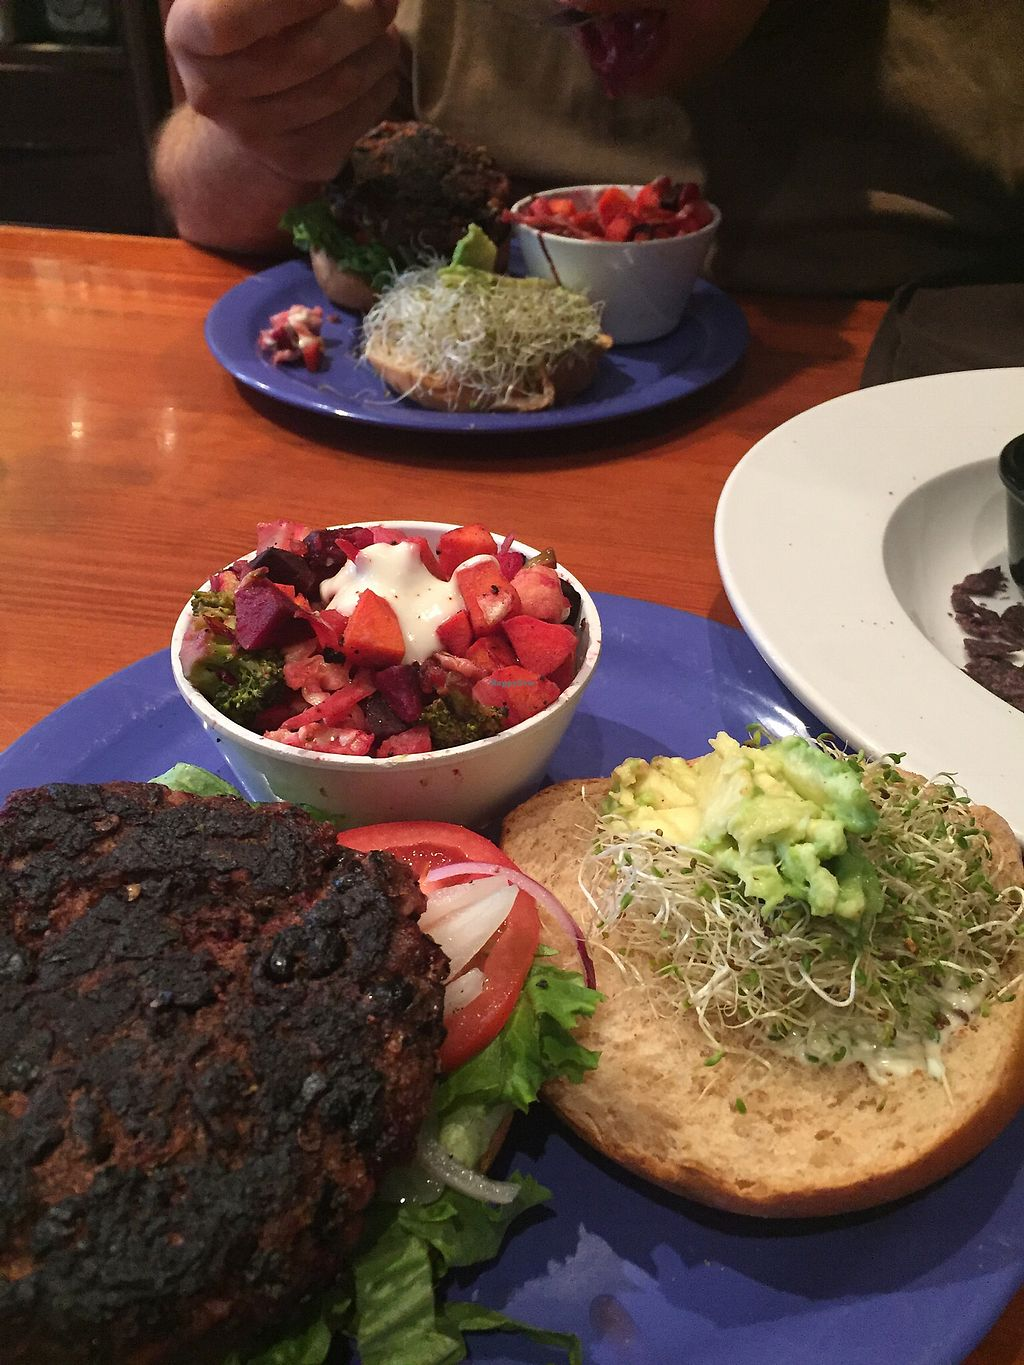 """Photo of The Wild Cow  by <a href=""""/members/profile/aWiiPeanut"""">aWiiPeanut</a> <br/>veggie burger <br/> August 11, 2017  - <a href='/contact/abuse/image/19759/291415'>Report</a>"""